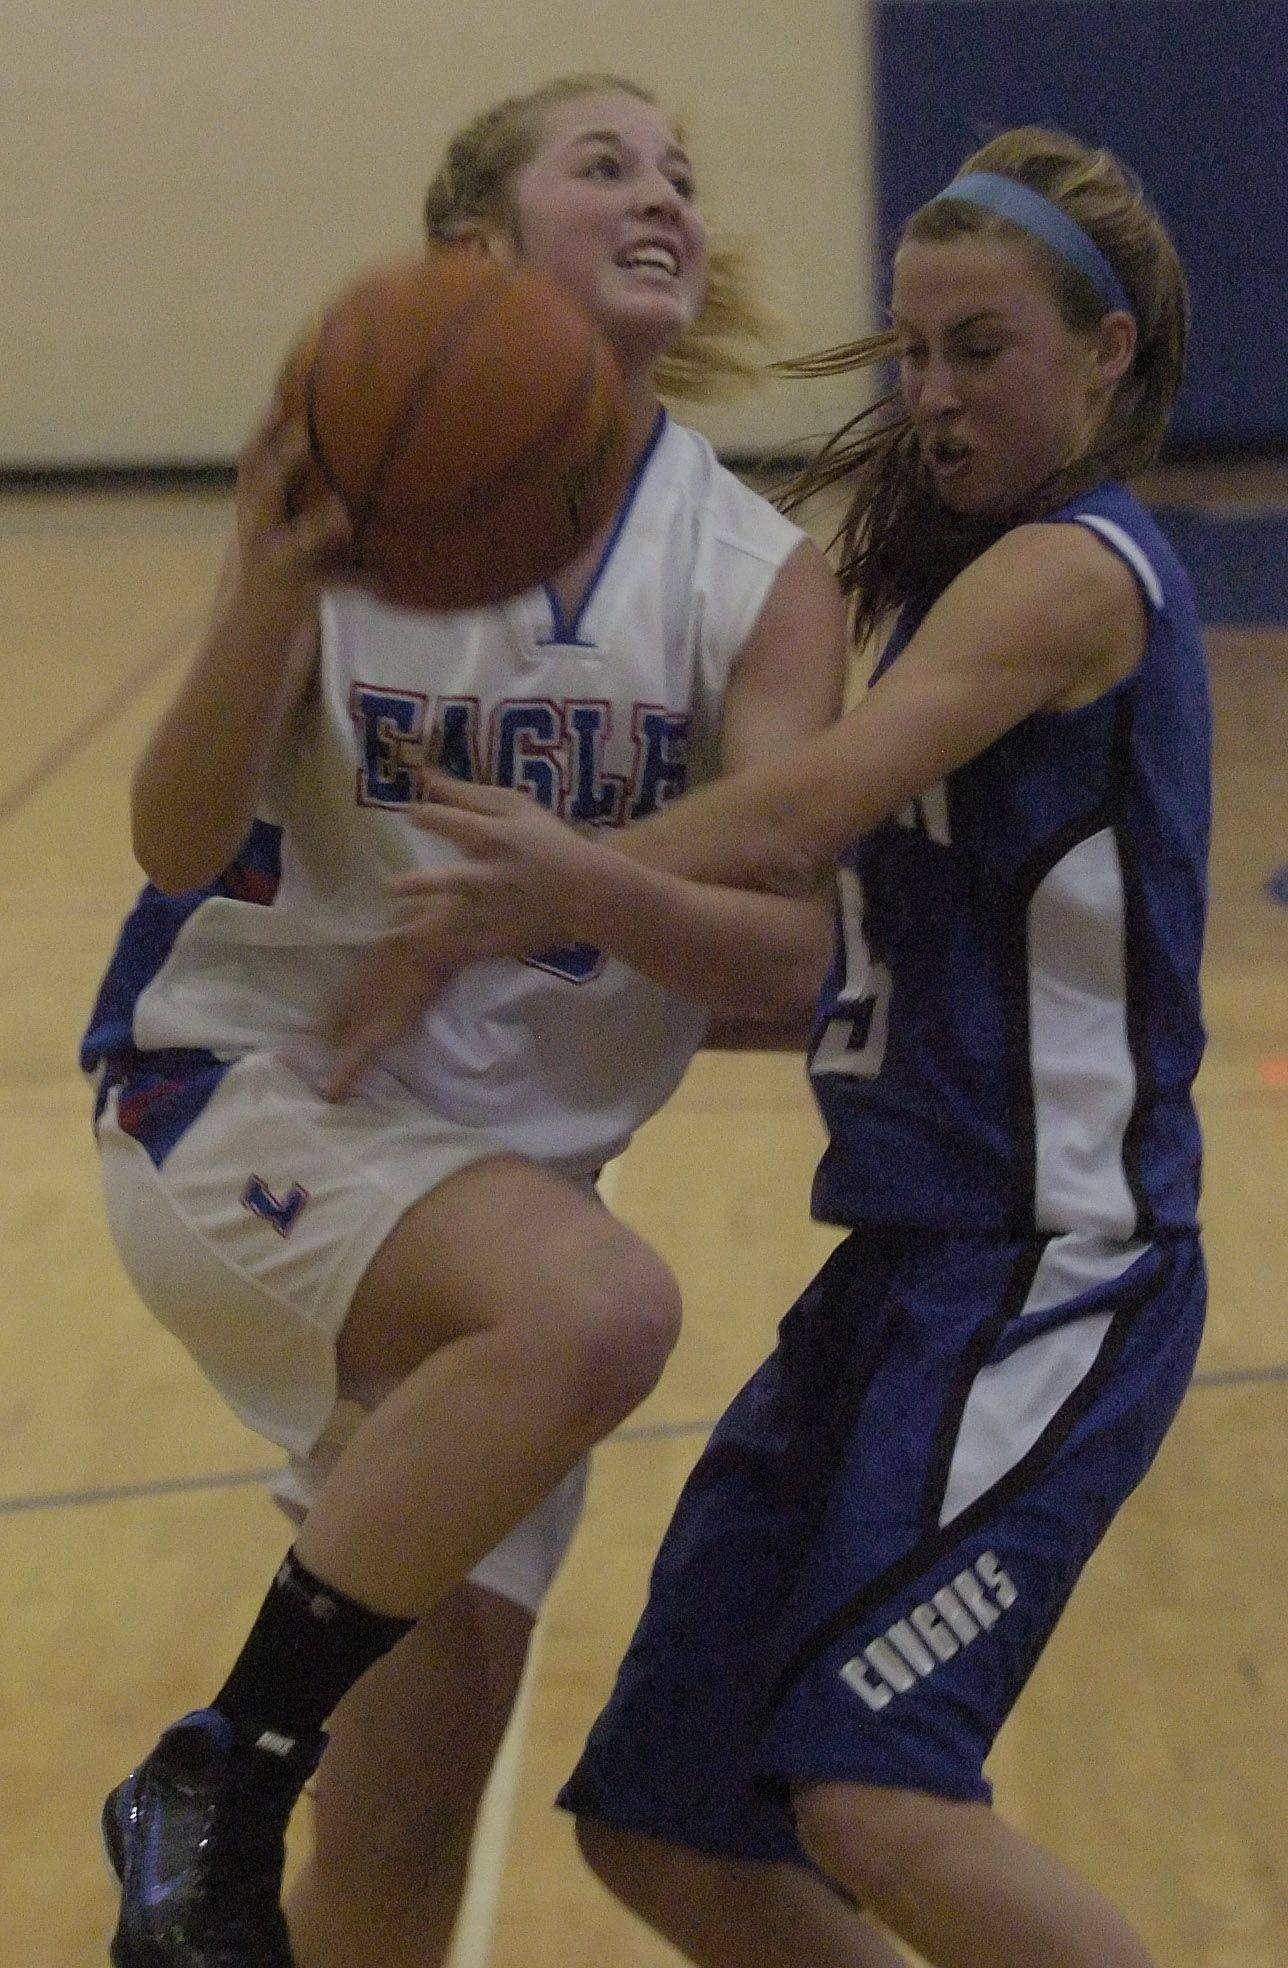 Lakes' Katie Brisner tries to drive past Julie Pecht of Vernon Hills during Saturday's game in Lake Villa.